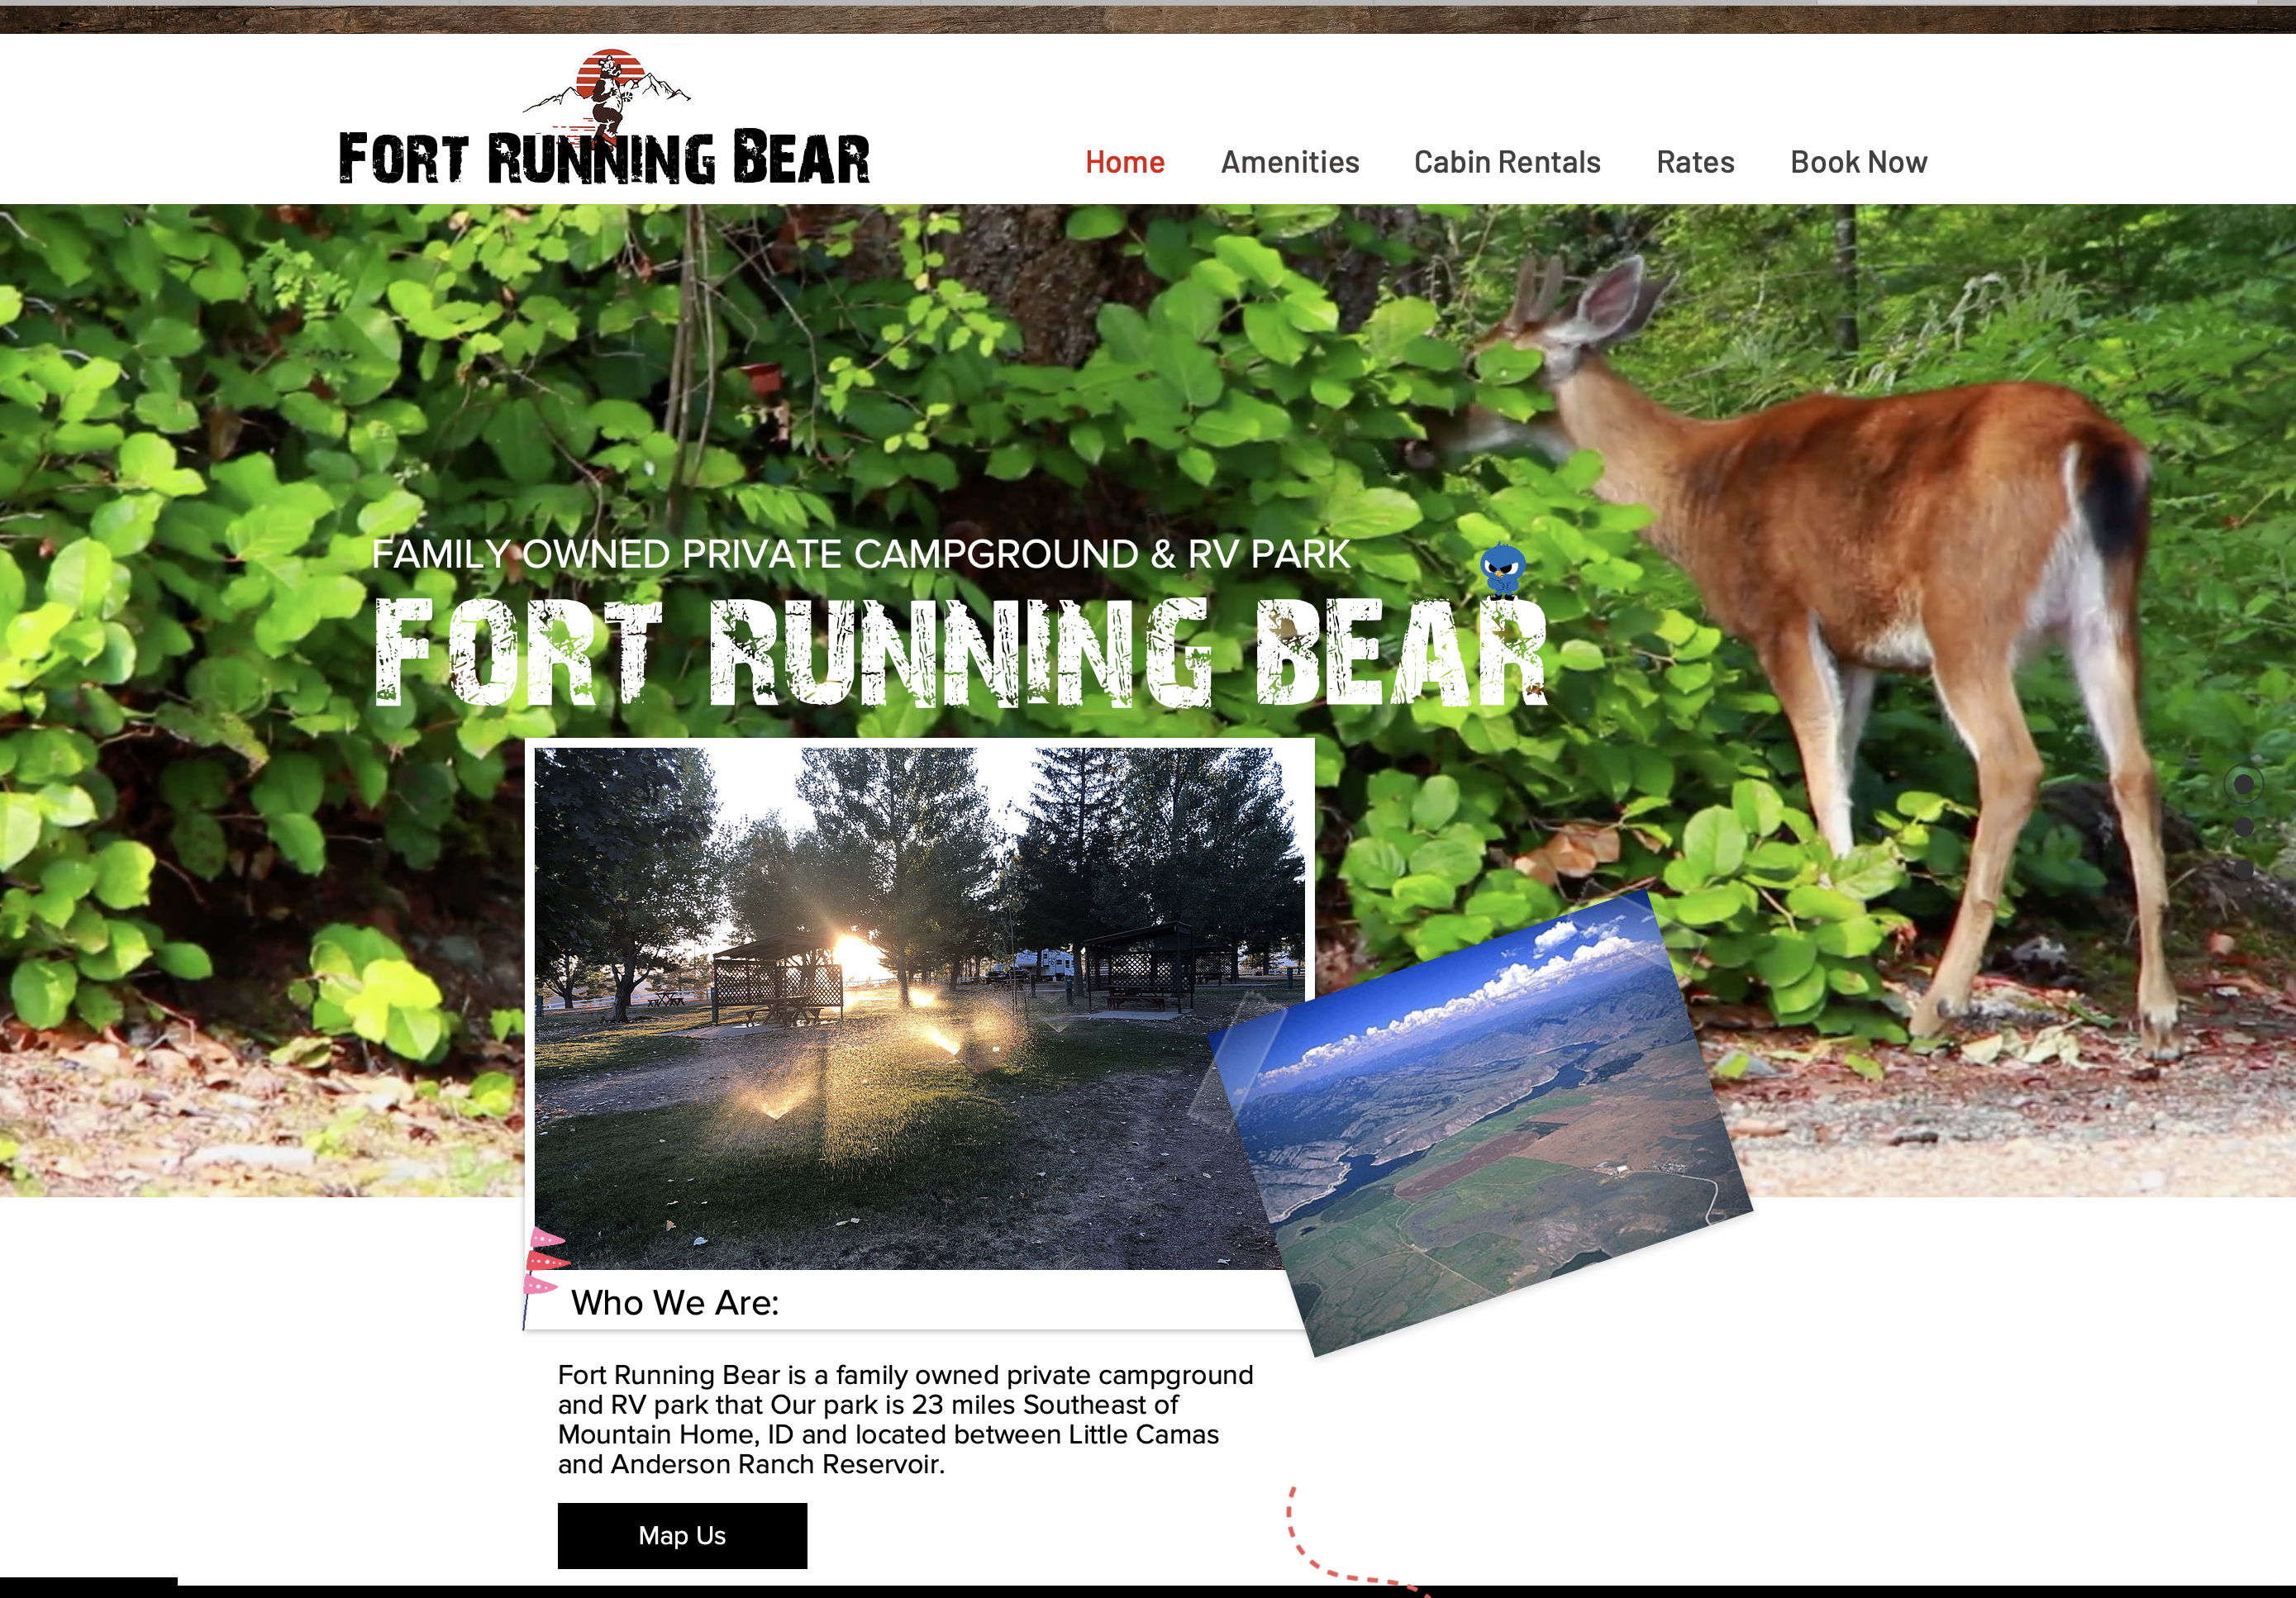 Fort Running Bear